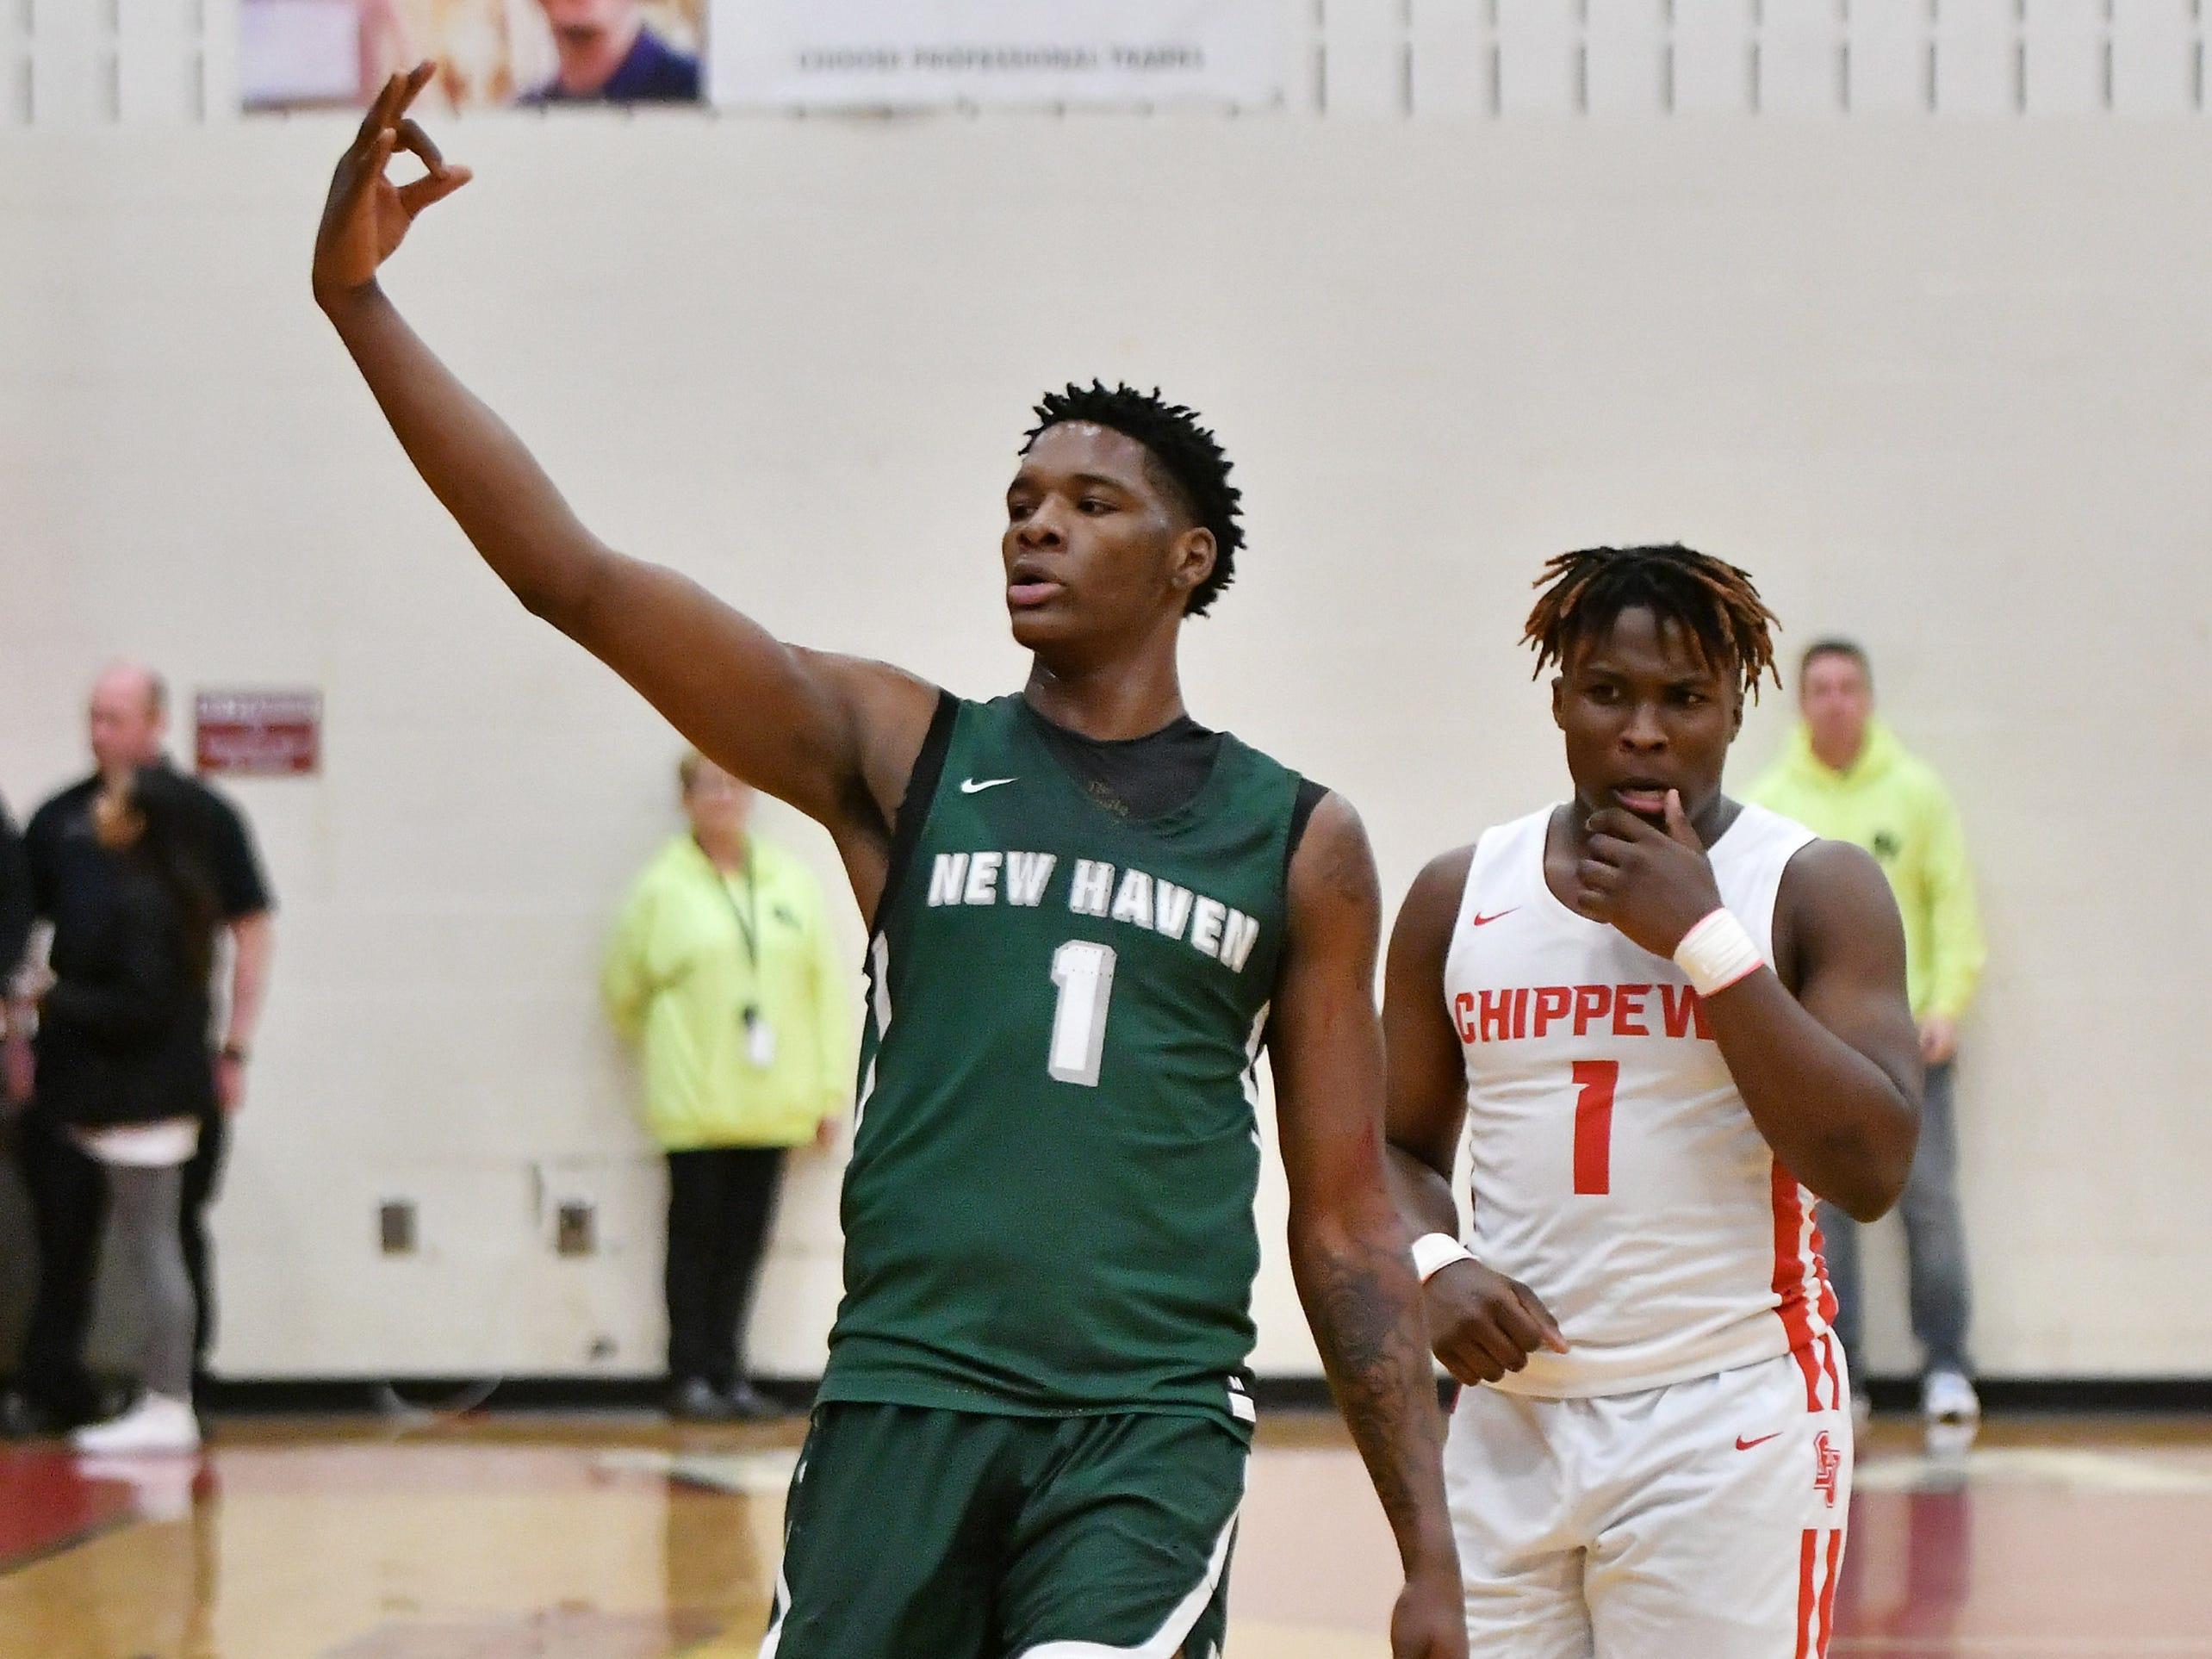 New Haven's Romeo Weems signals three points towards the Chippewa Valley student section after he hits a three-point shot in the first half.